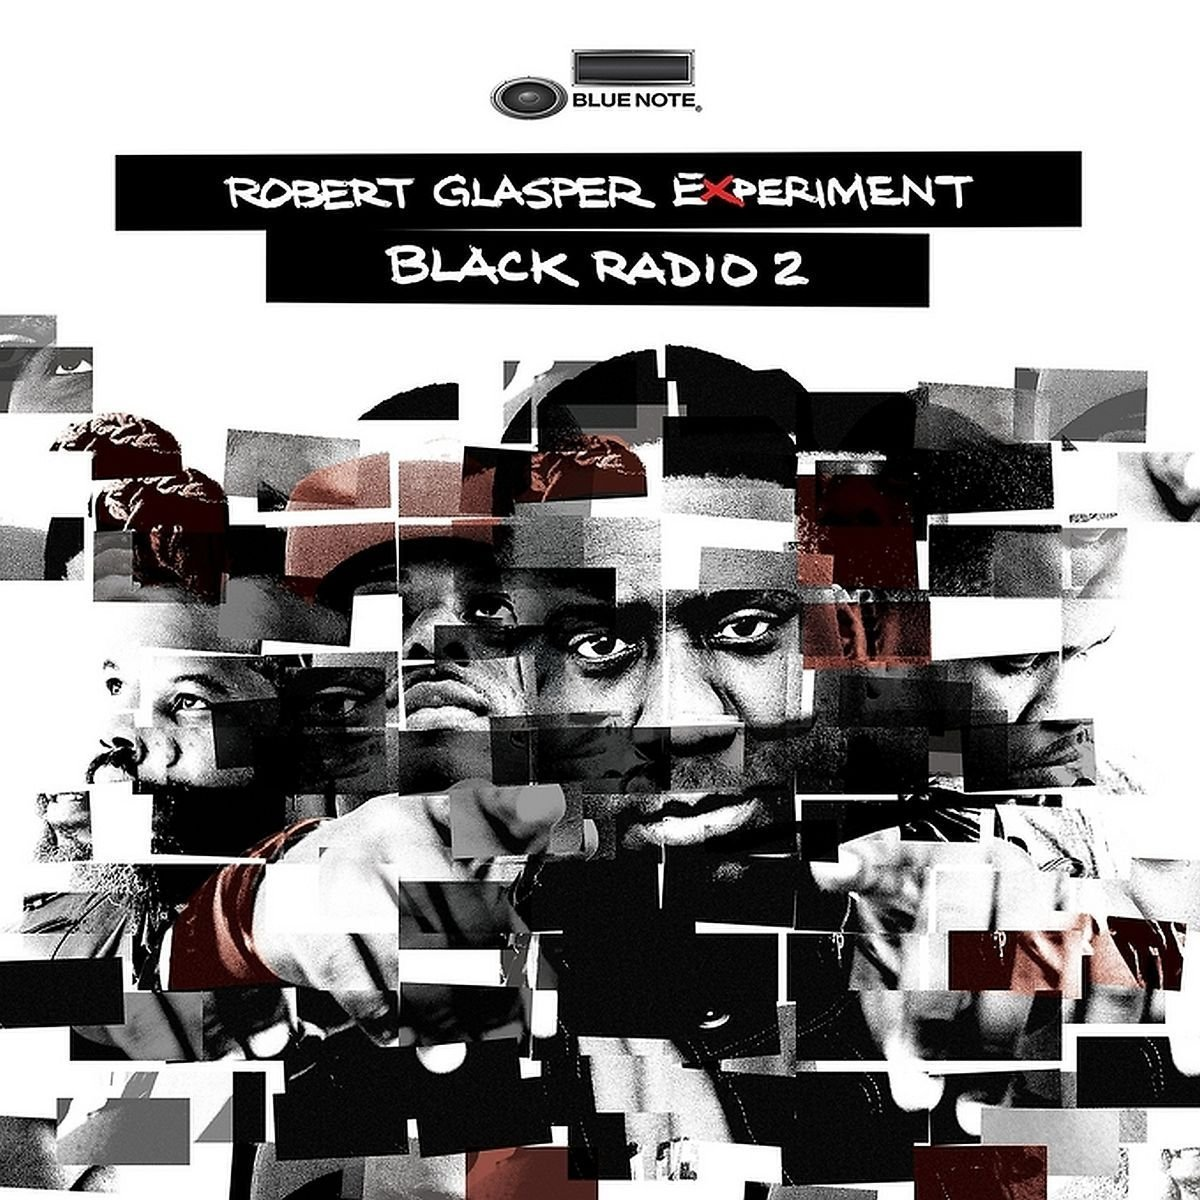 blackradio2.jpg